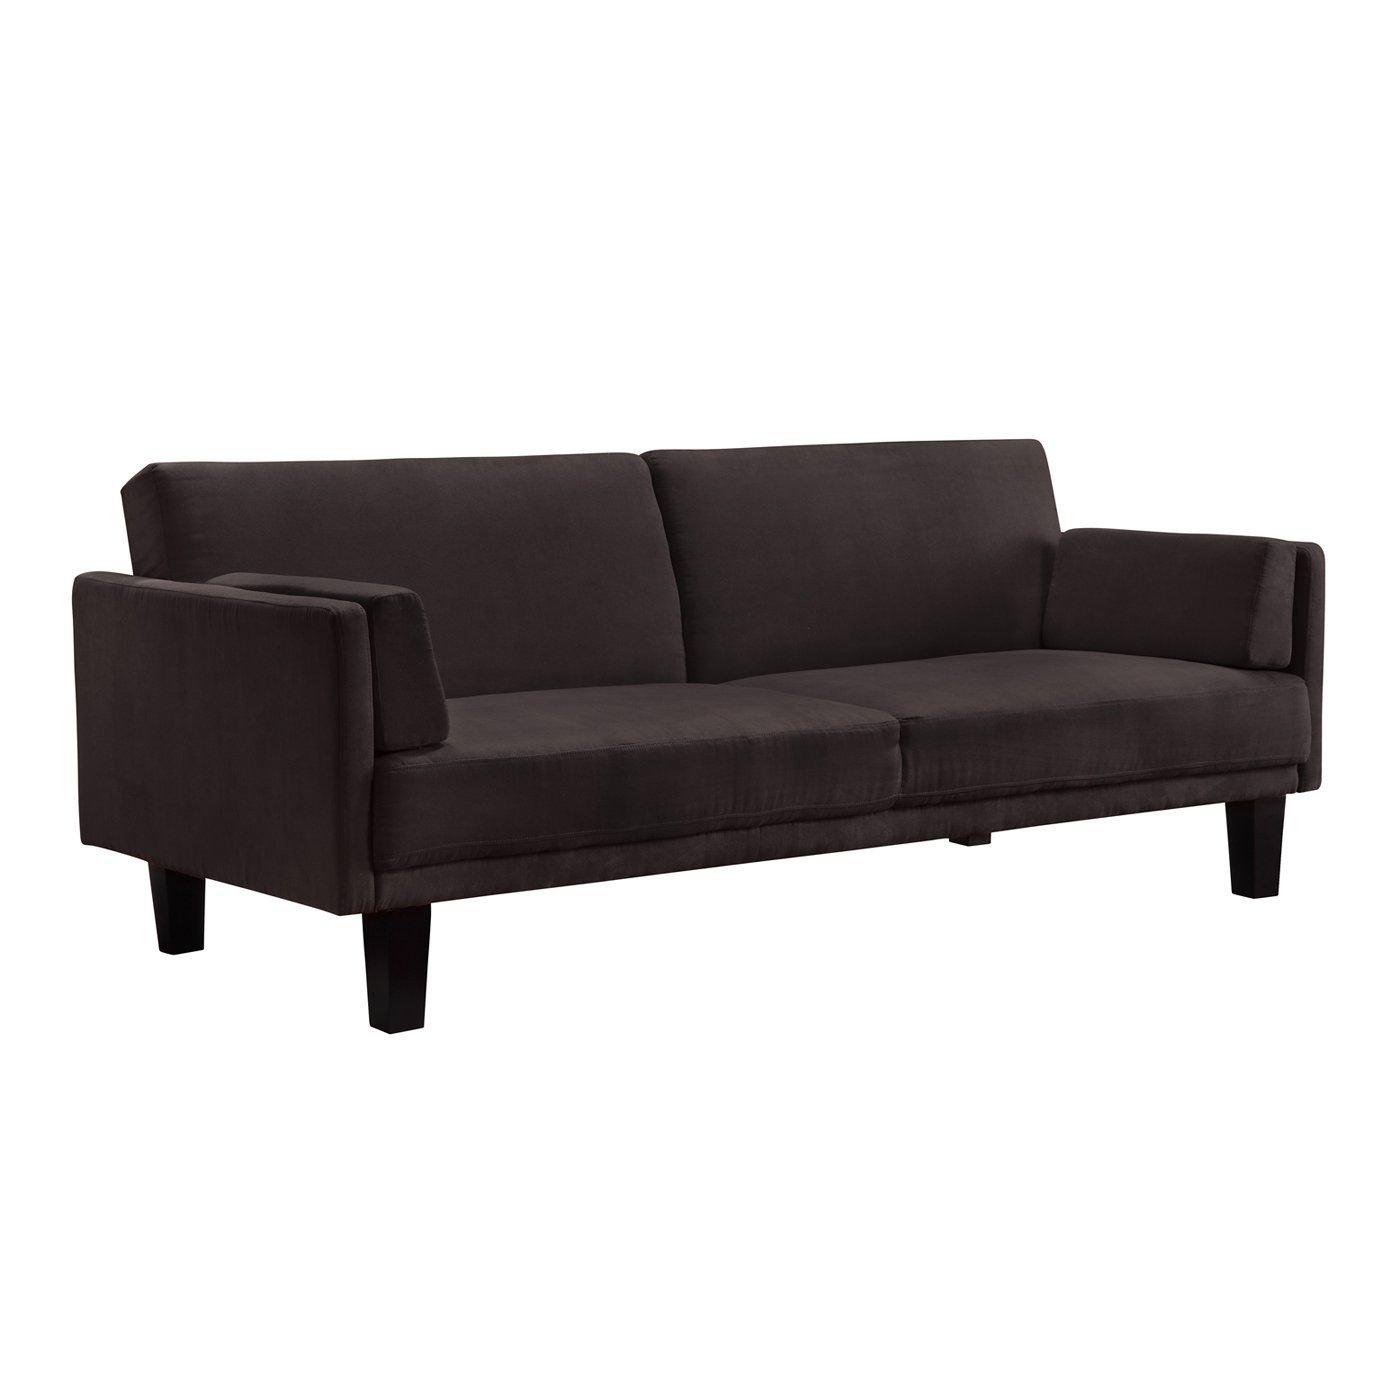 Dhp 3201 Metro Futon Sofa Bed Brown Sofa Bed Black Sofa Bed Red